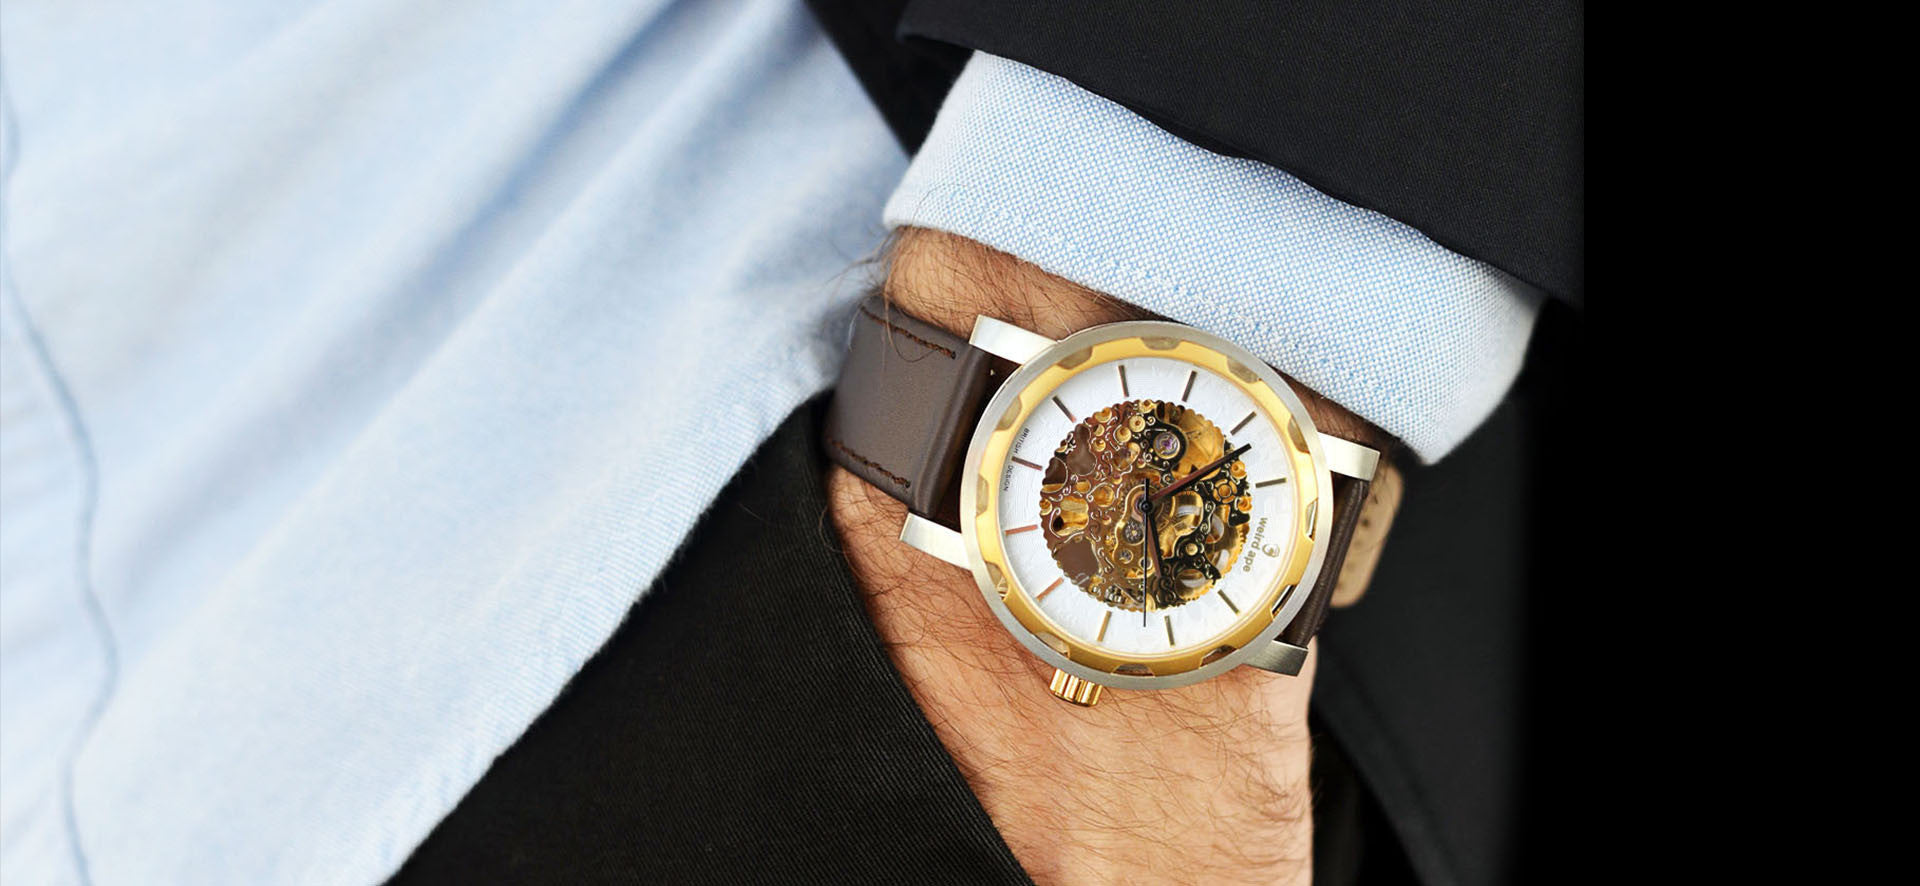 Gold skeleton watch with a brown strap in a lifestyle image